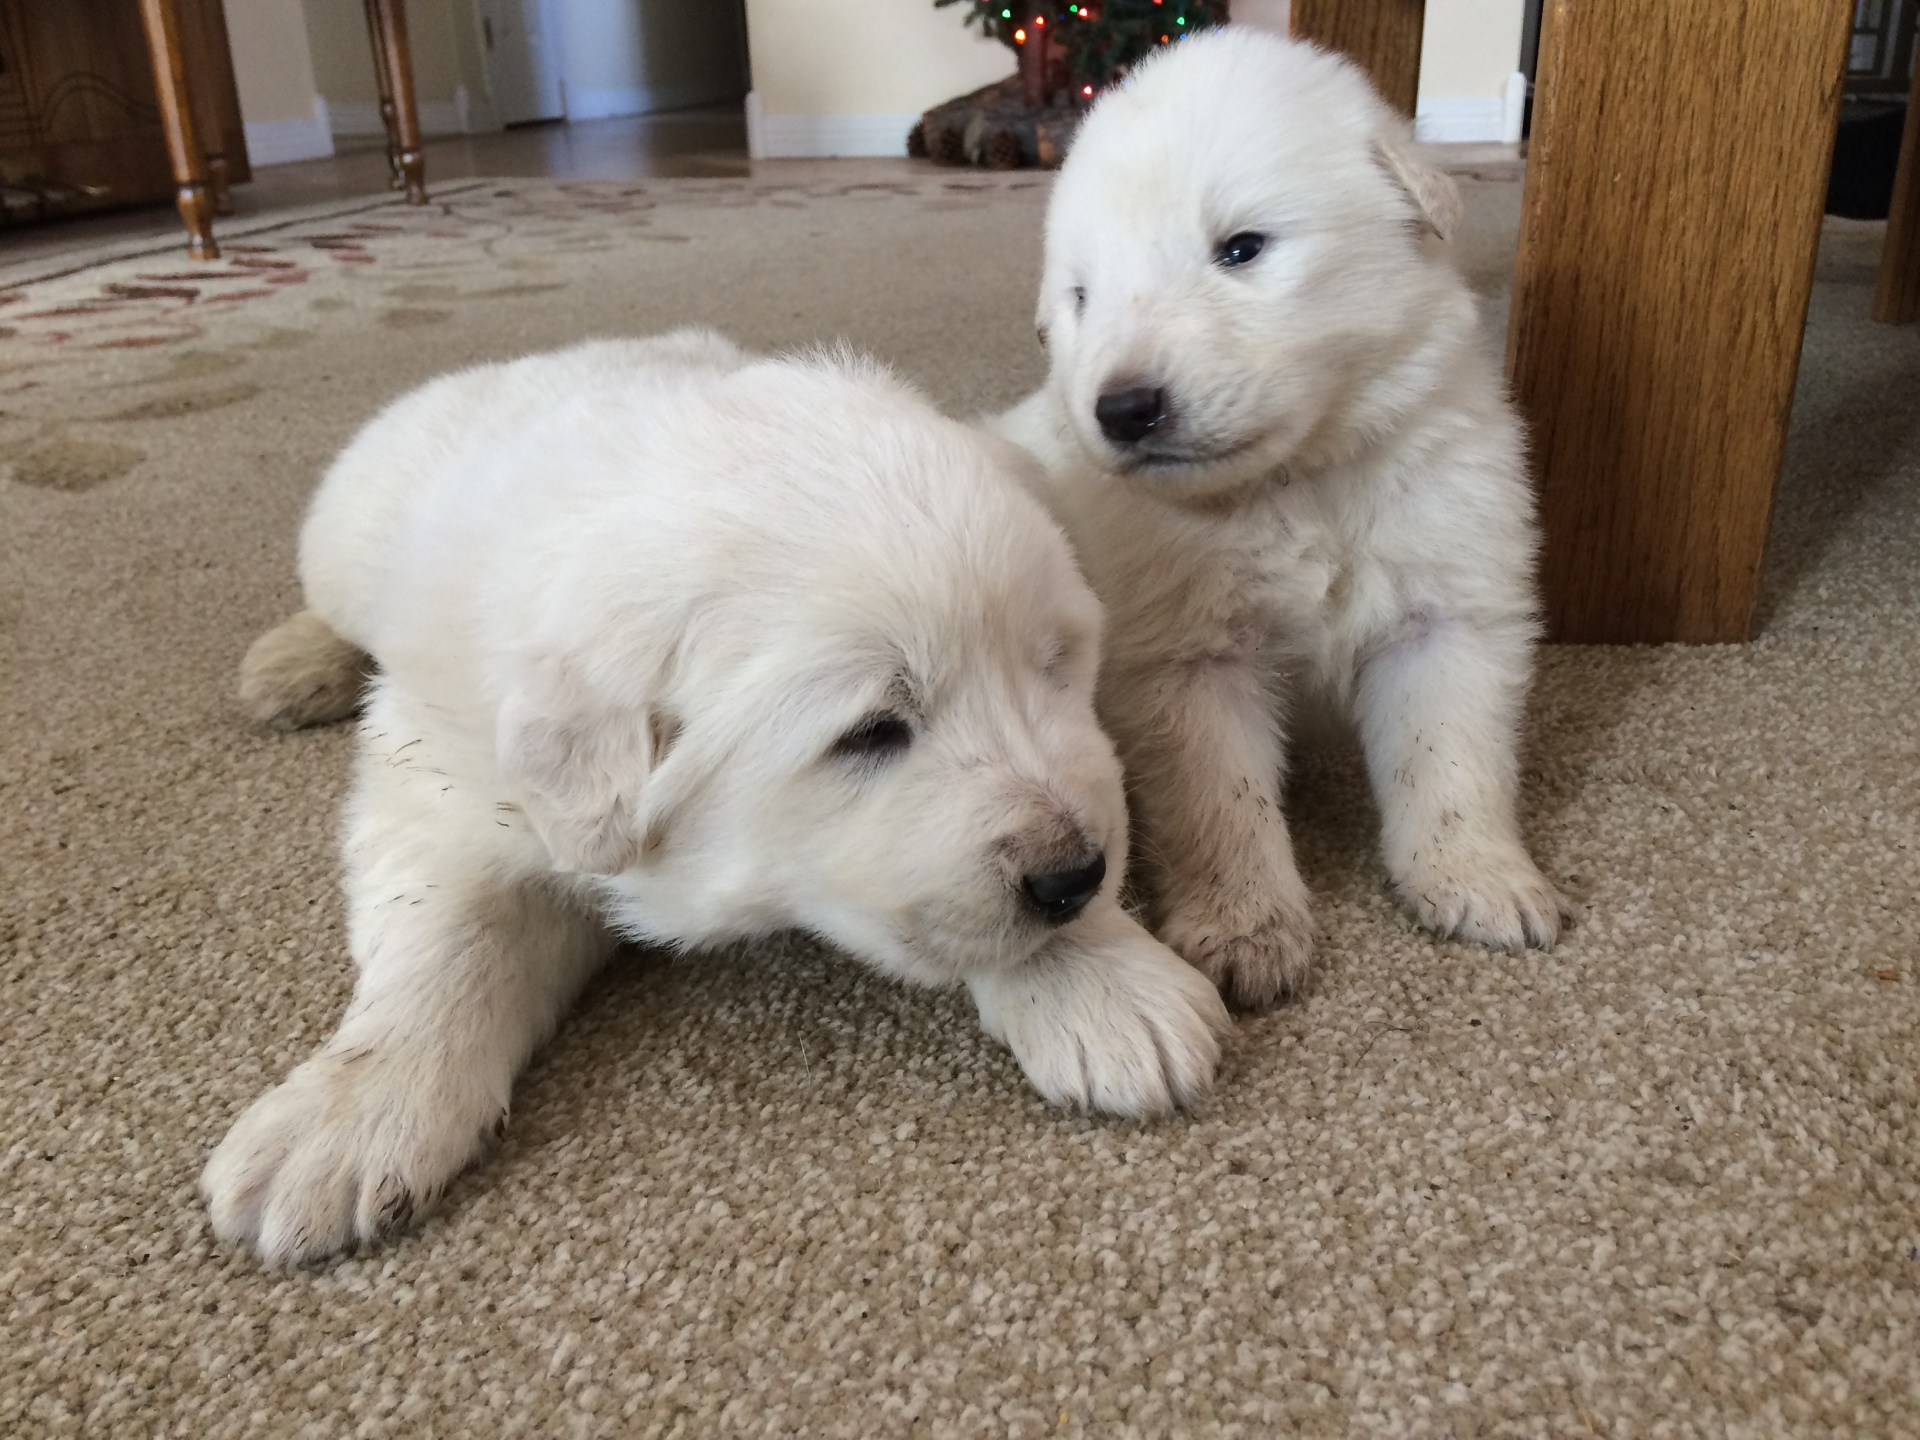 Two of Tayla's pups